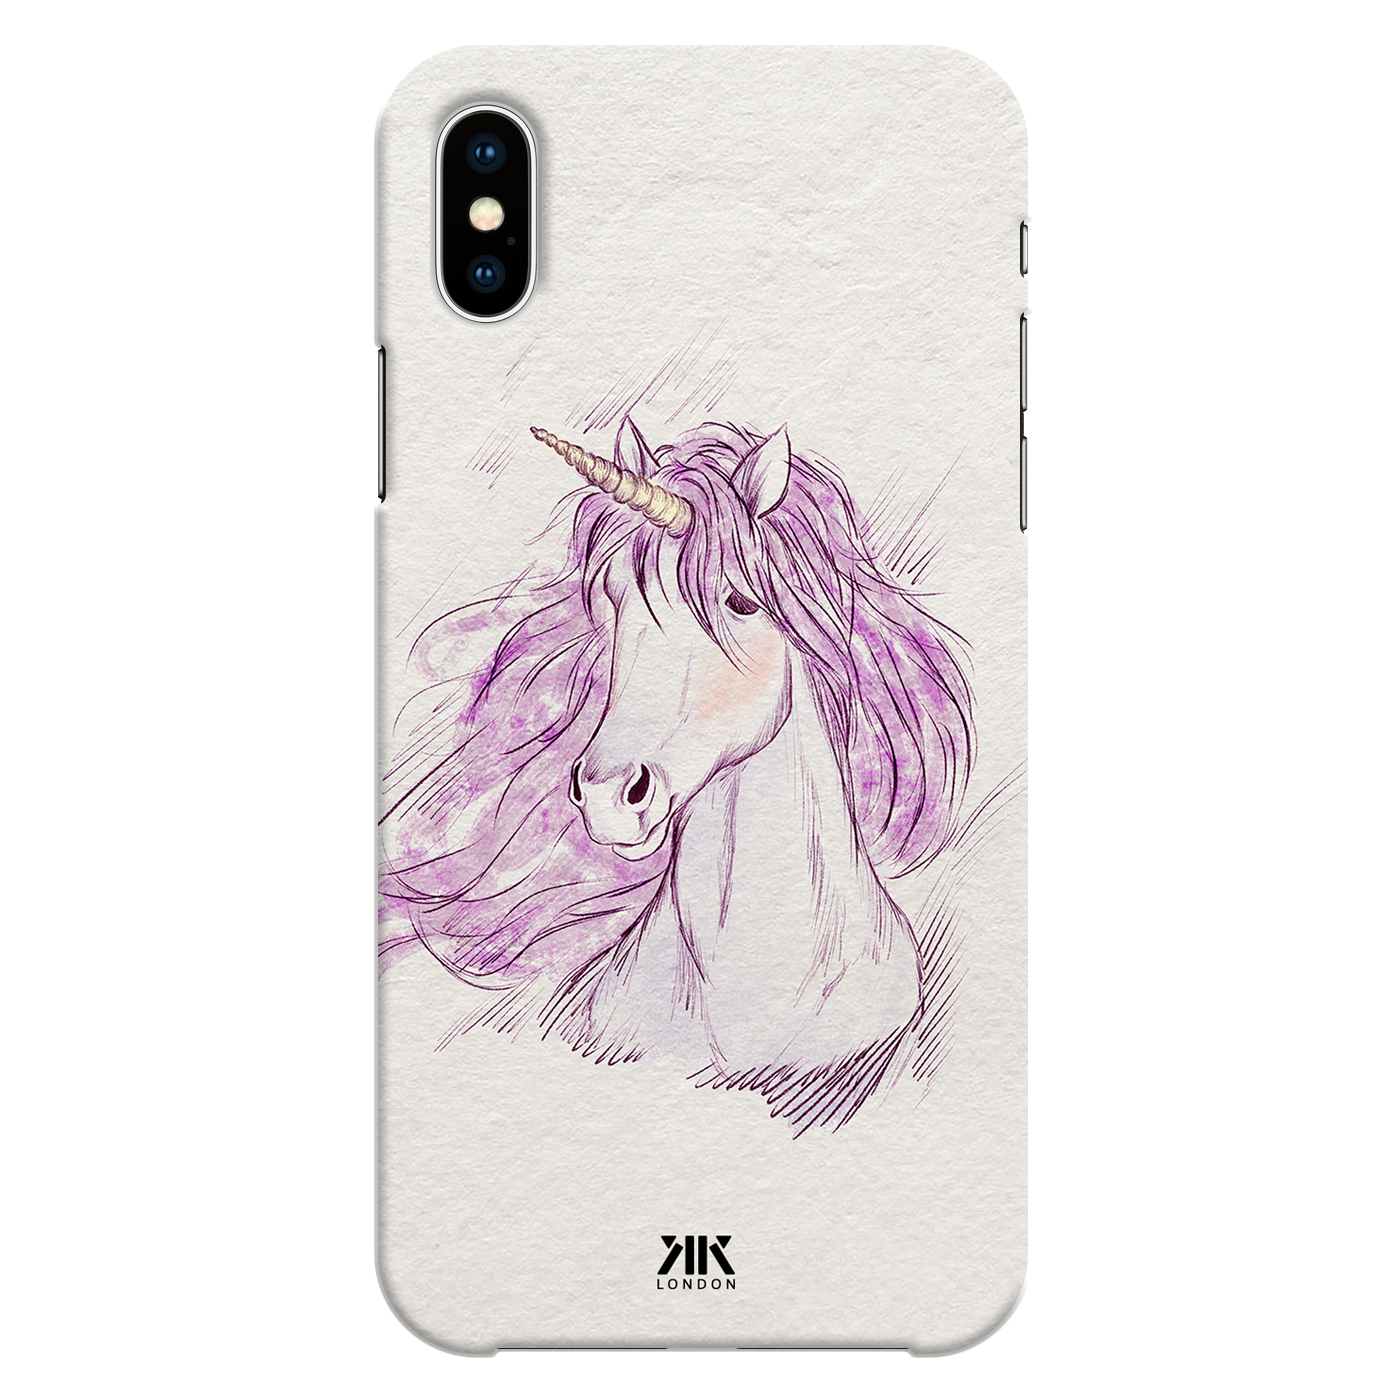 iPhone 6s unicorn case in WR2 Worcester